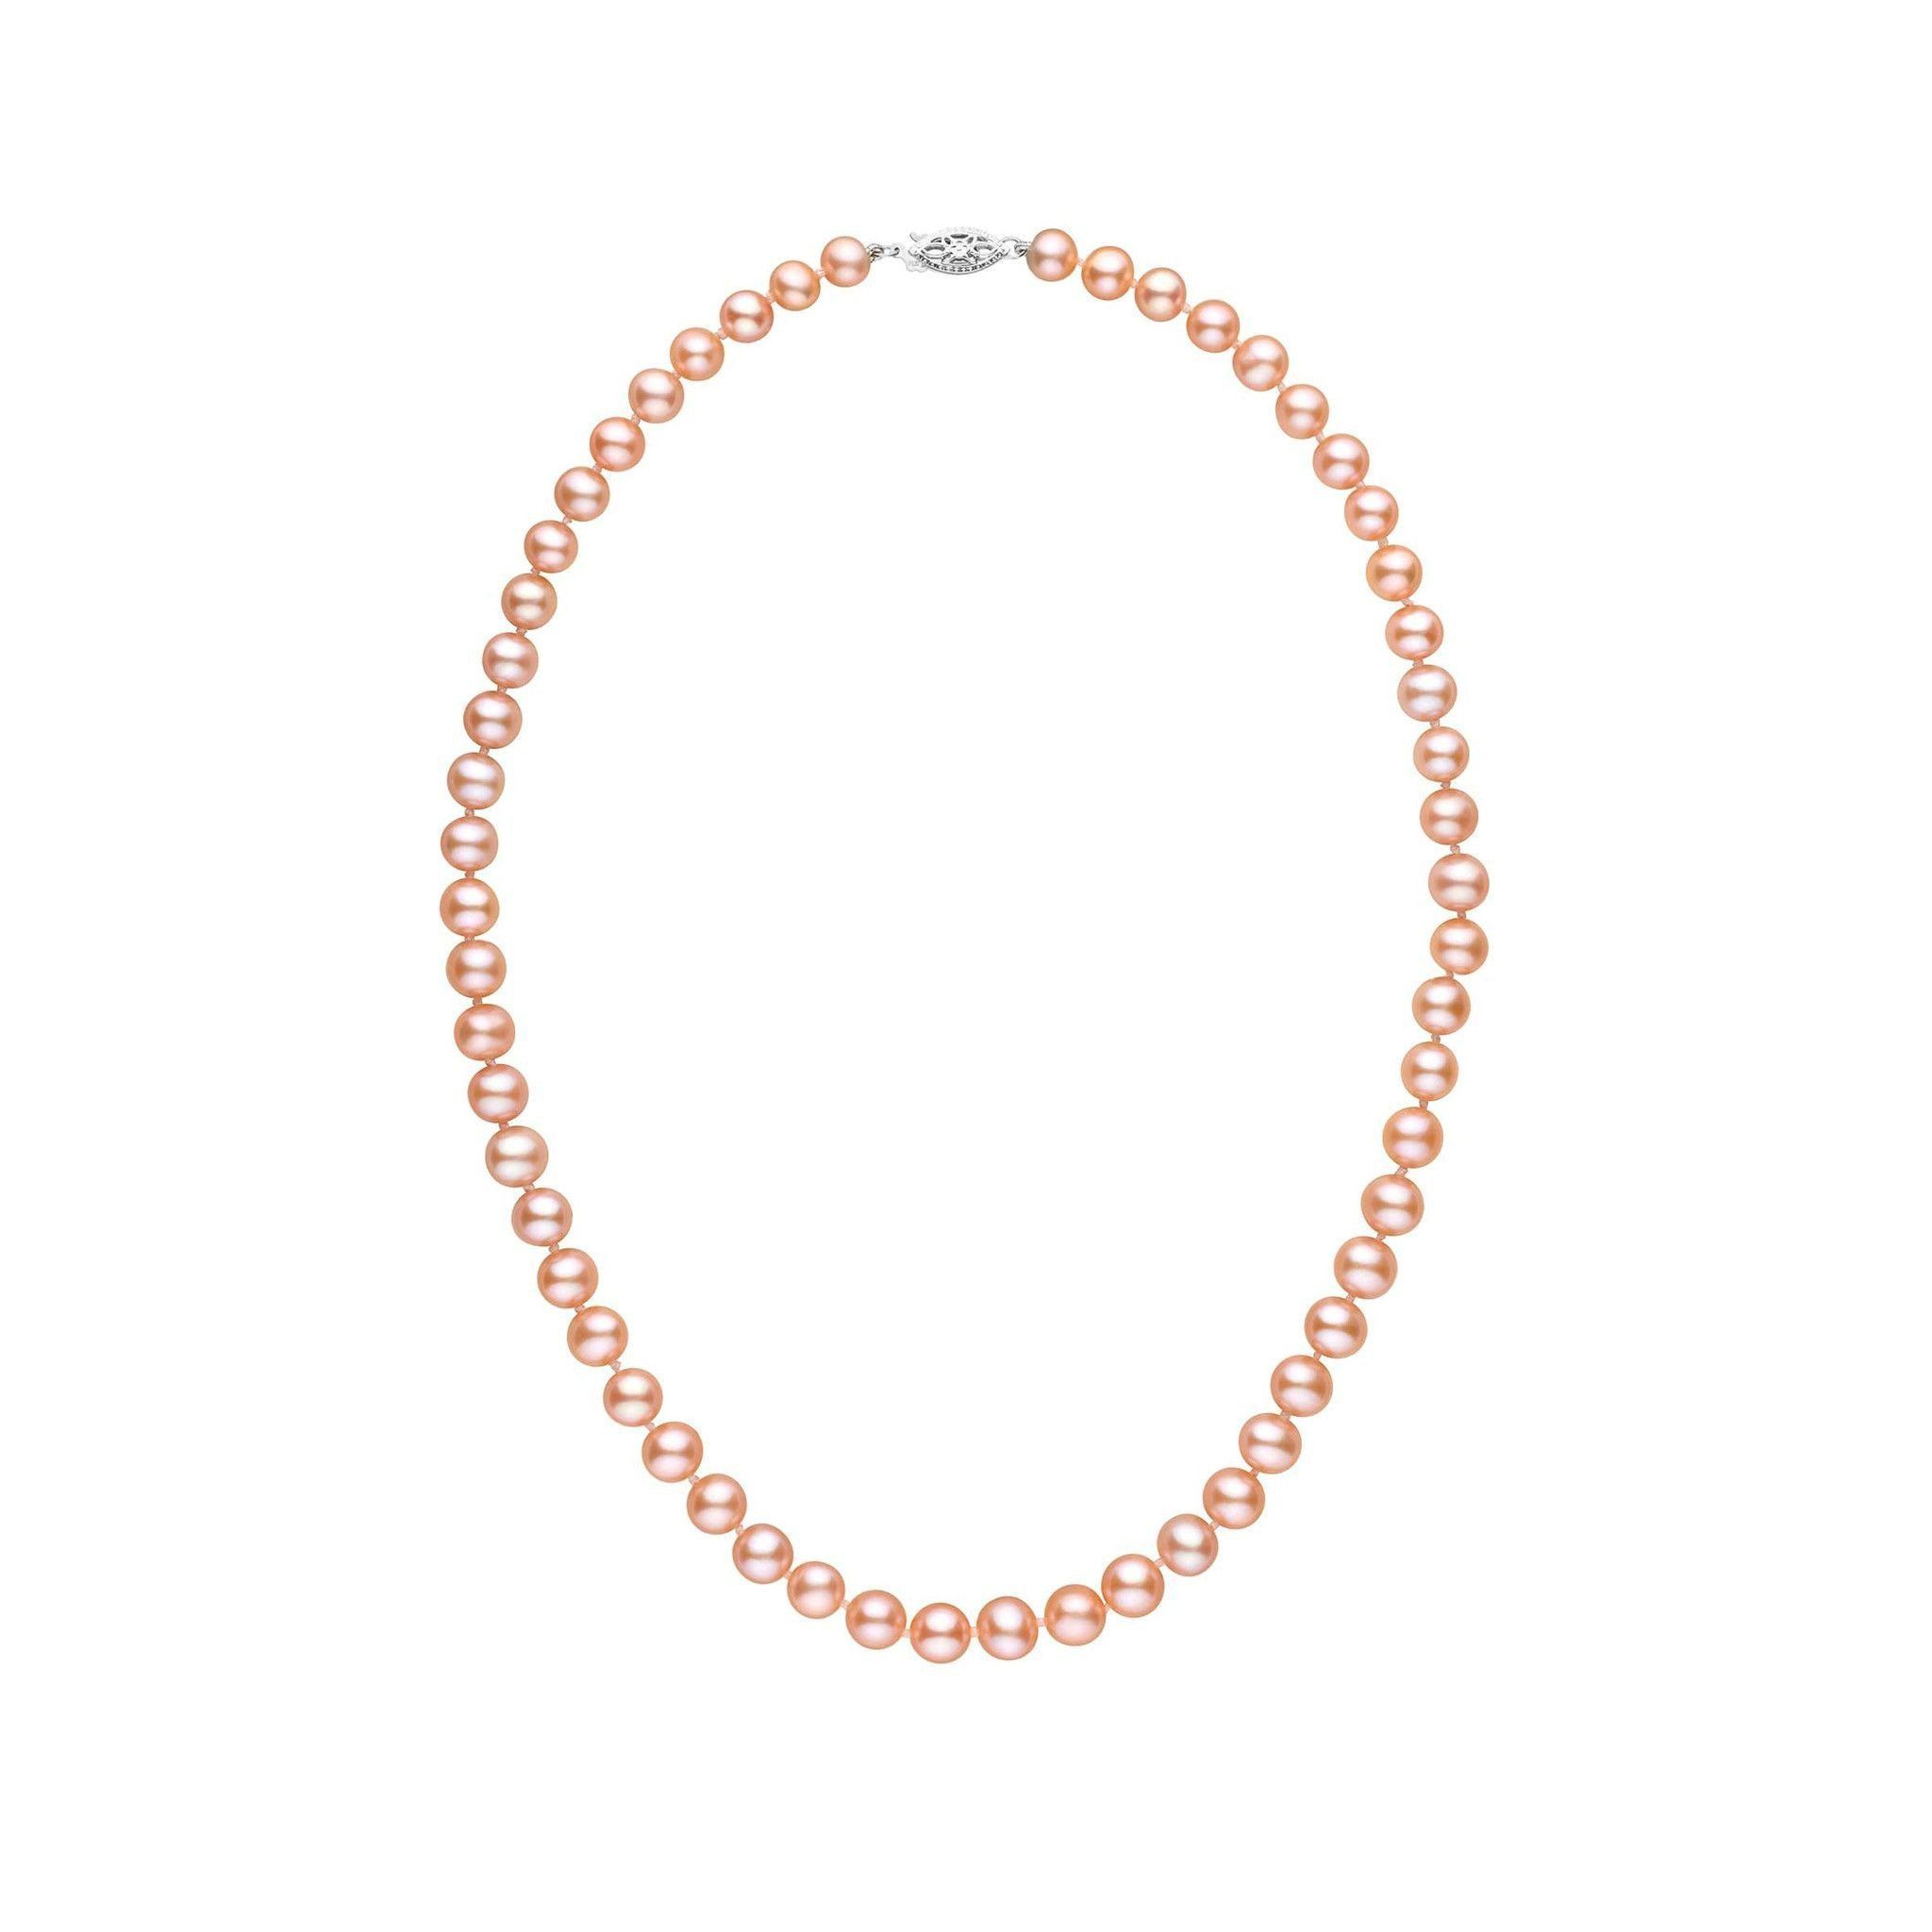 6.5-7.0 mm 16 Inch AAA Pink to Peach Freshwater Pearl Necklace